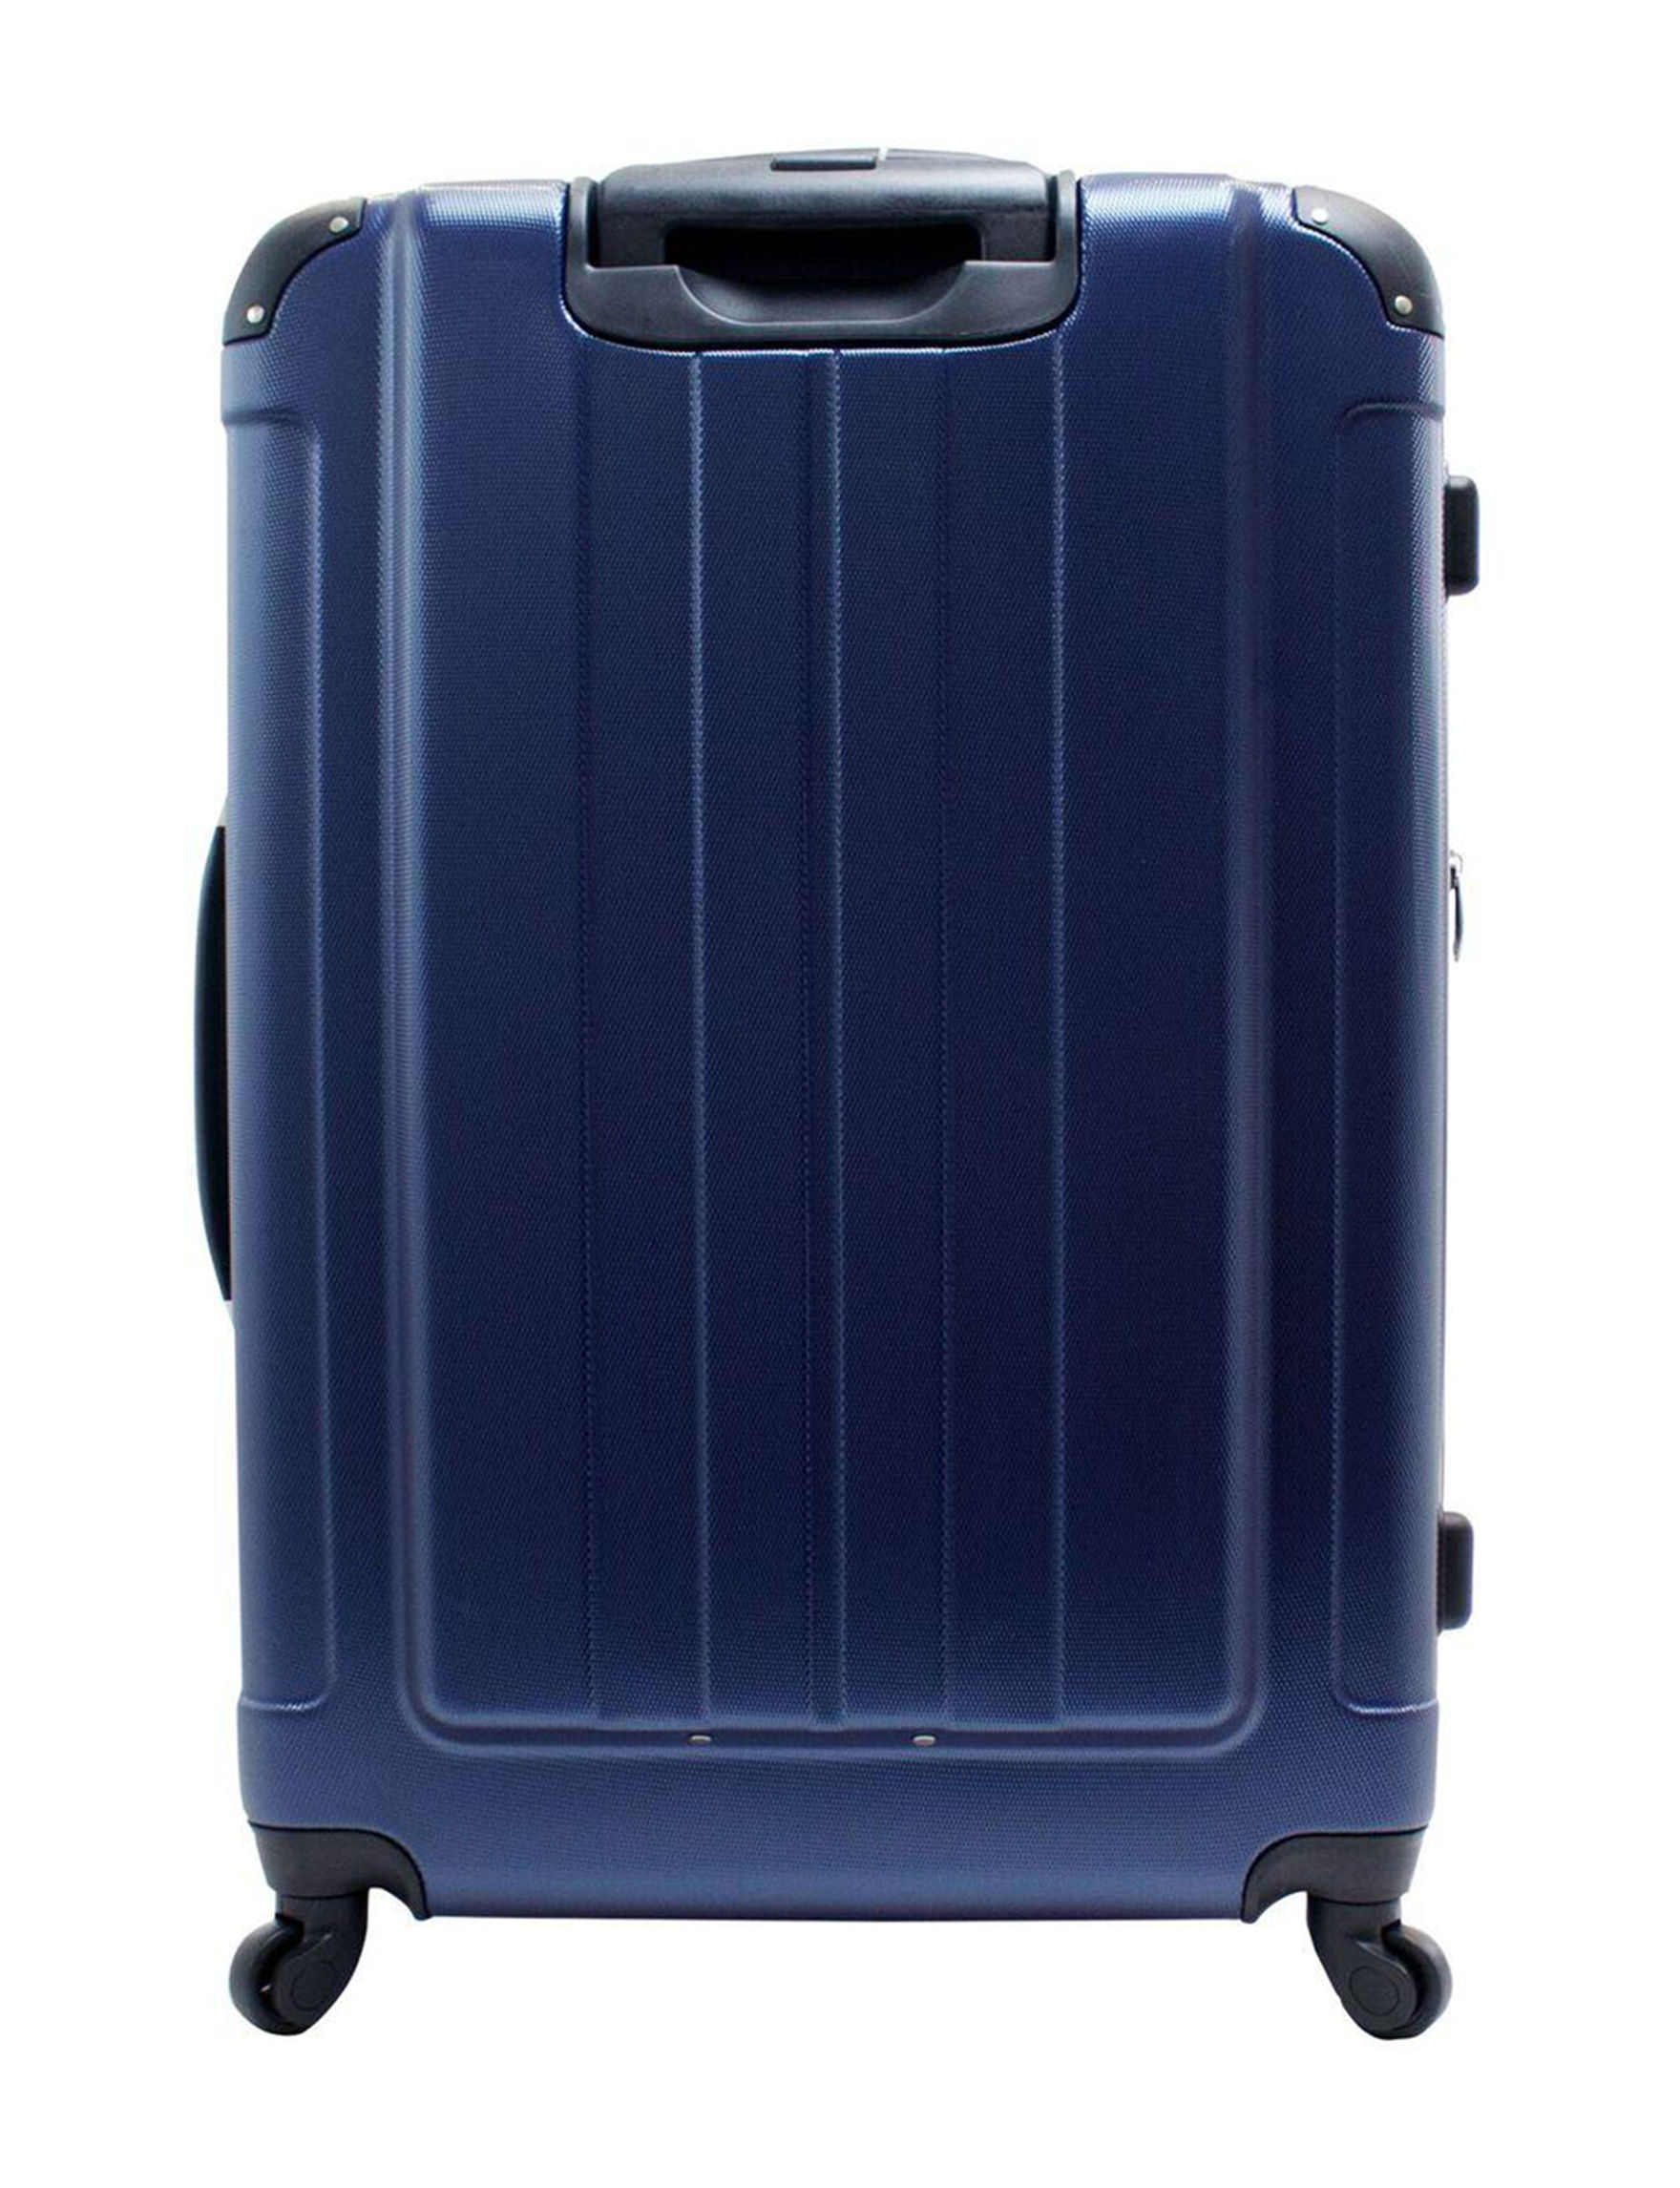 Chariot Travelware Navy Upright Spinners